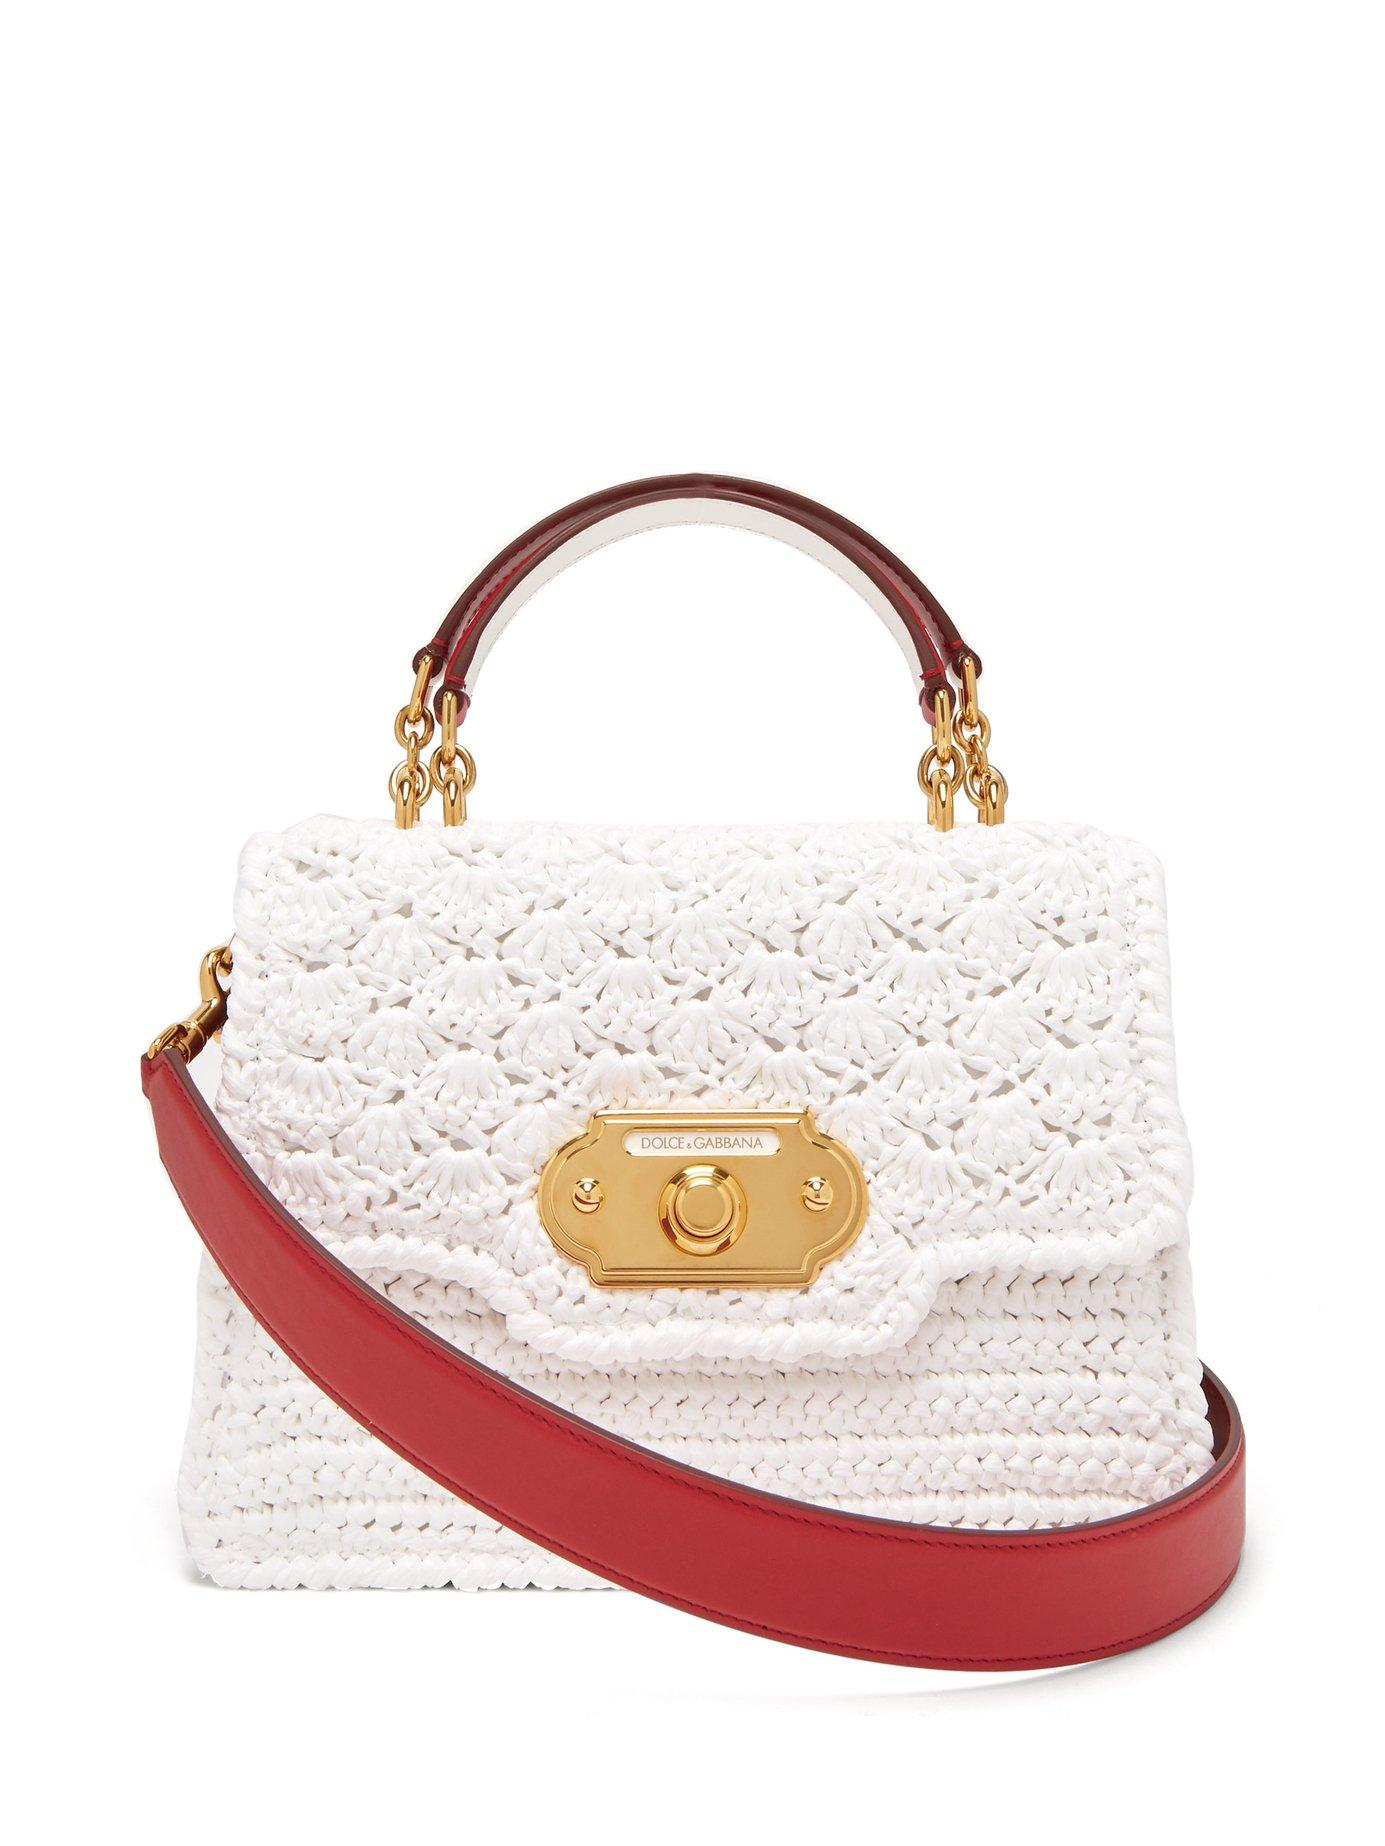 99fd897502ac Lyst - Dolce   Gabbana Welcome Crochet And Leather Bag in White